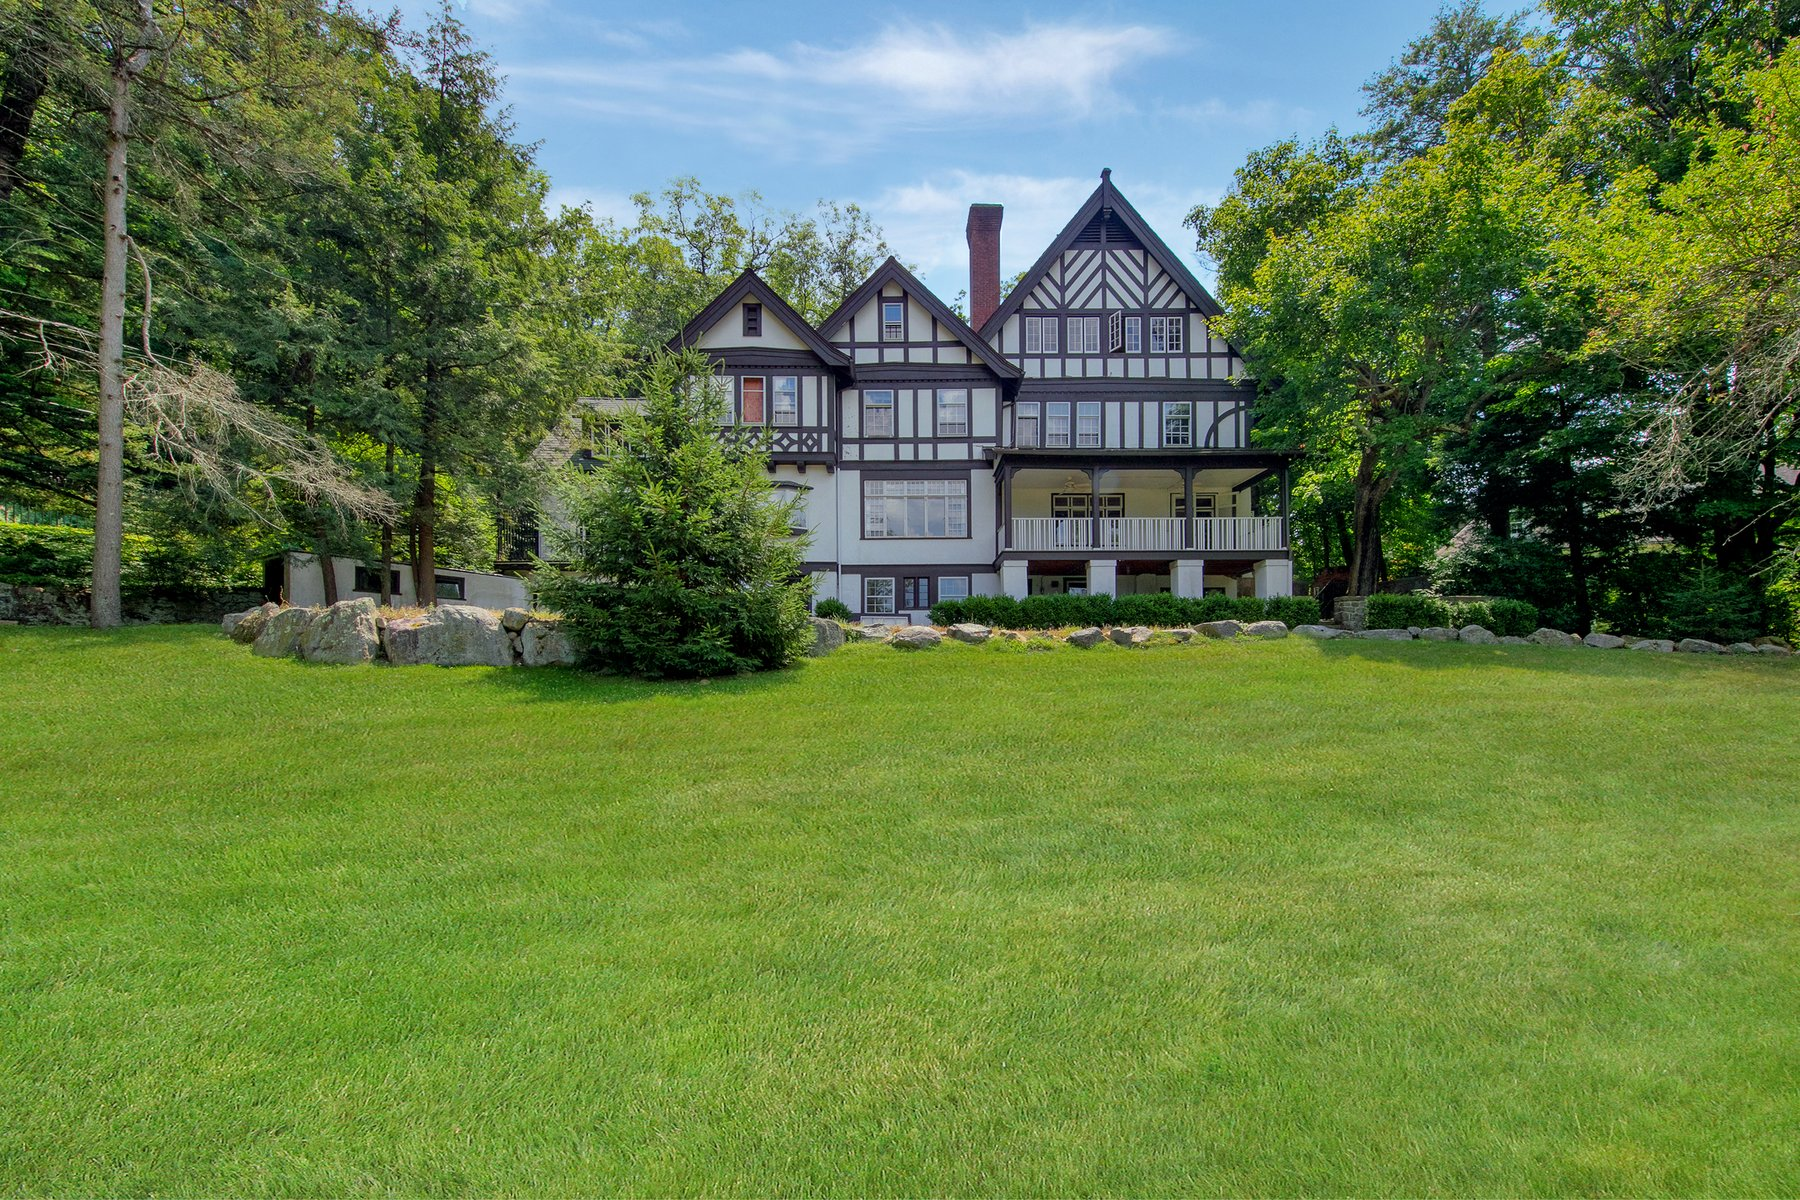 Property for Sale at Lorillard Cottage 130 Continental Road Tuxedo Park, New York 10987 United States